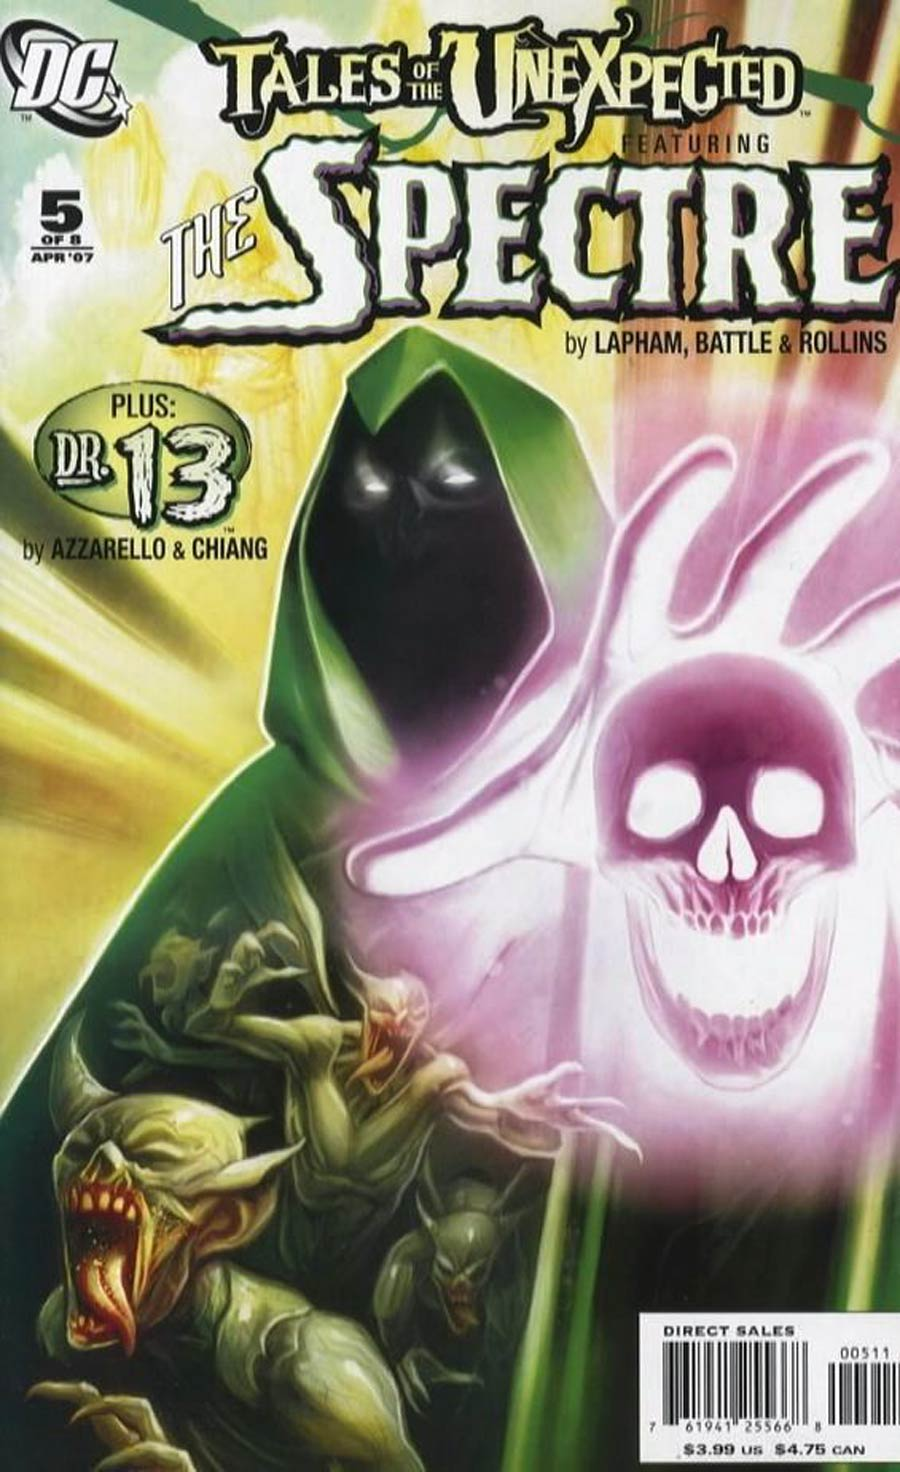 Tales Of The Unexpected Vol 2 #5